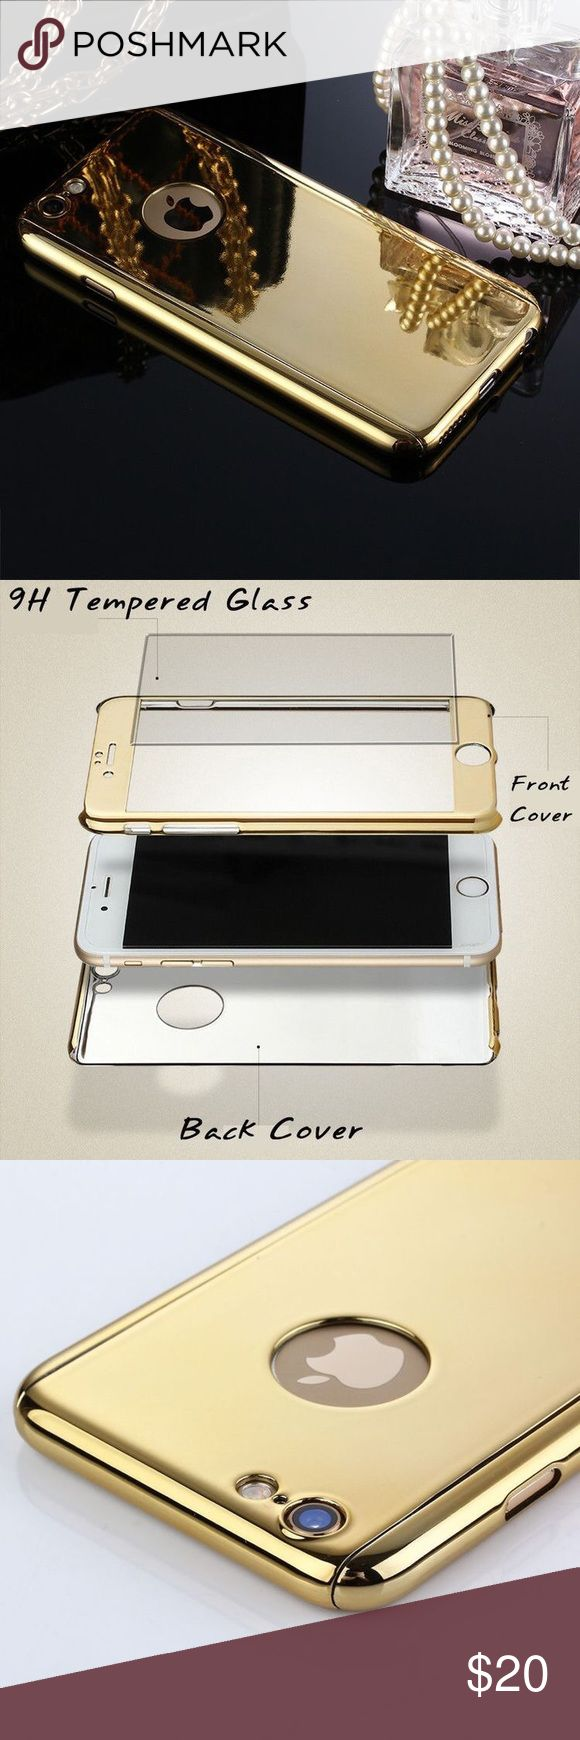 🆕the mirror plated 360° phone case • style name: the mirror plated 360° phone case • color: gold • material: alloy & plated metal/9h tempered glass • high shine mirror case w/ front & back pieces • also includes tempered glass protection for screen & camera • currently stocking for iphone 6/6s - comment to request for a different phone • condition: brand new boutique item ____________________________________________________ ✅ make an offer!     ✅ i bundle! ✅ posh compliant closet ⛔️ no…